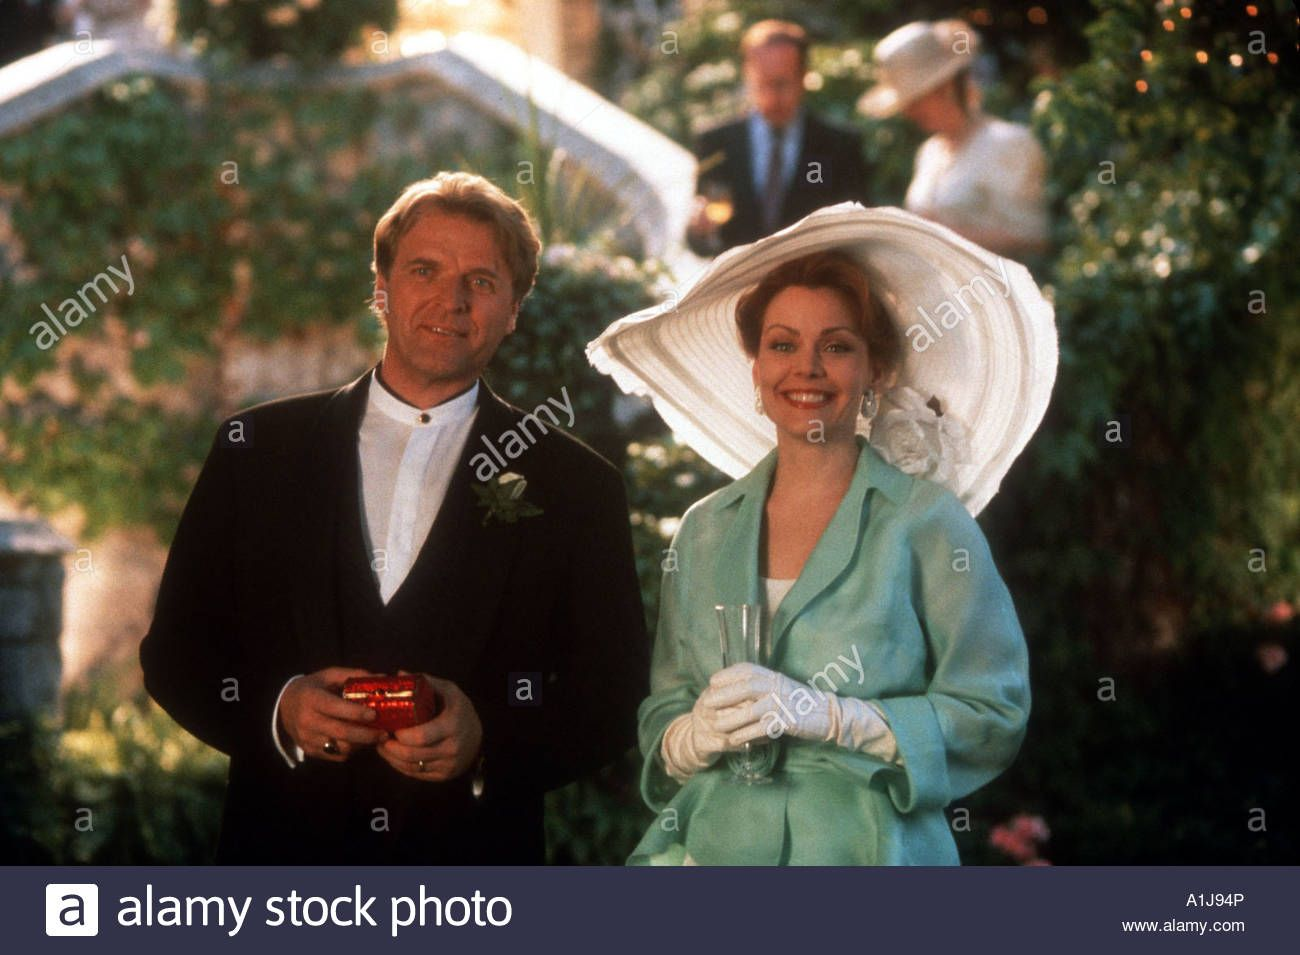 That Old Feeling Year 1997 Director Carl Reiner David Rashe Gail O Stock Photo, Royalty Free Image: 10270341 - Alamy